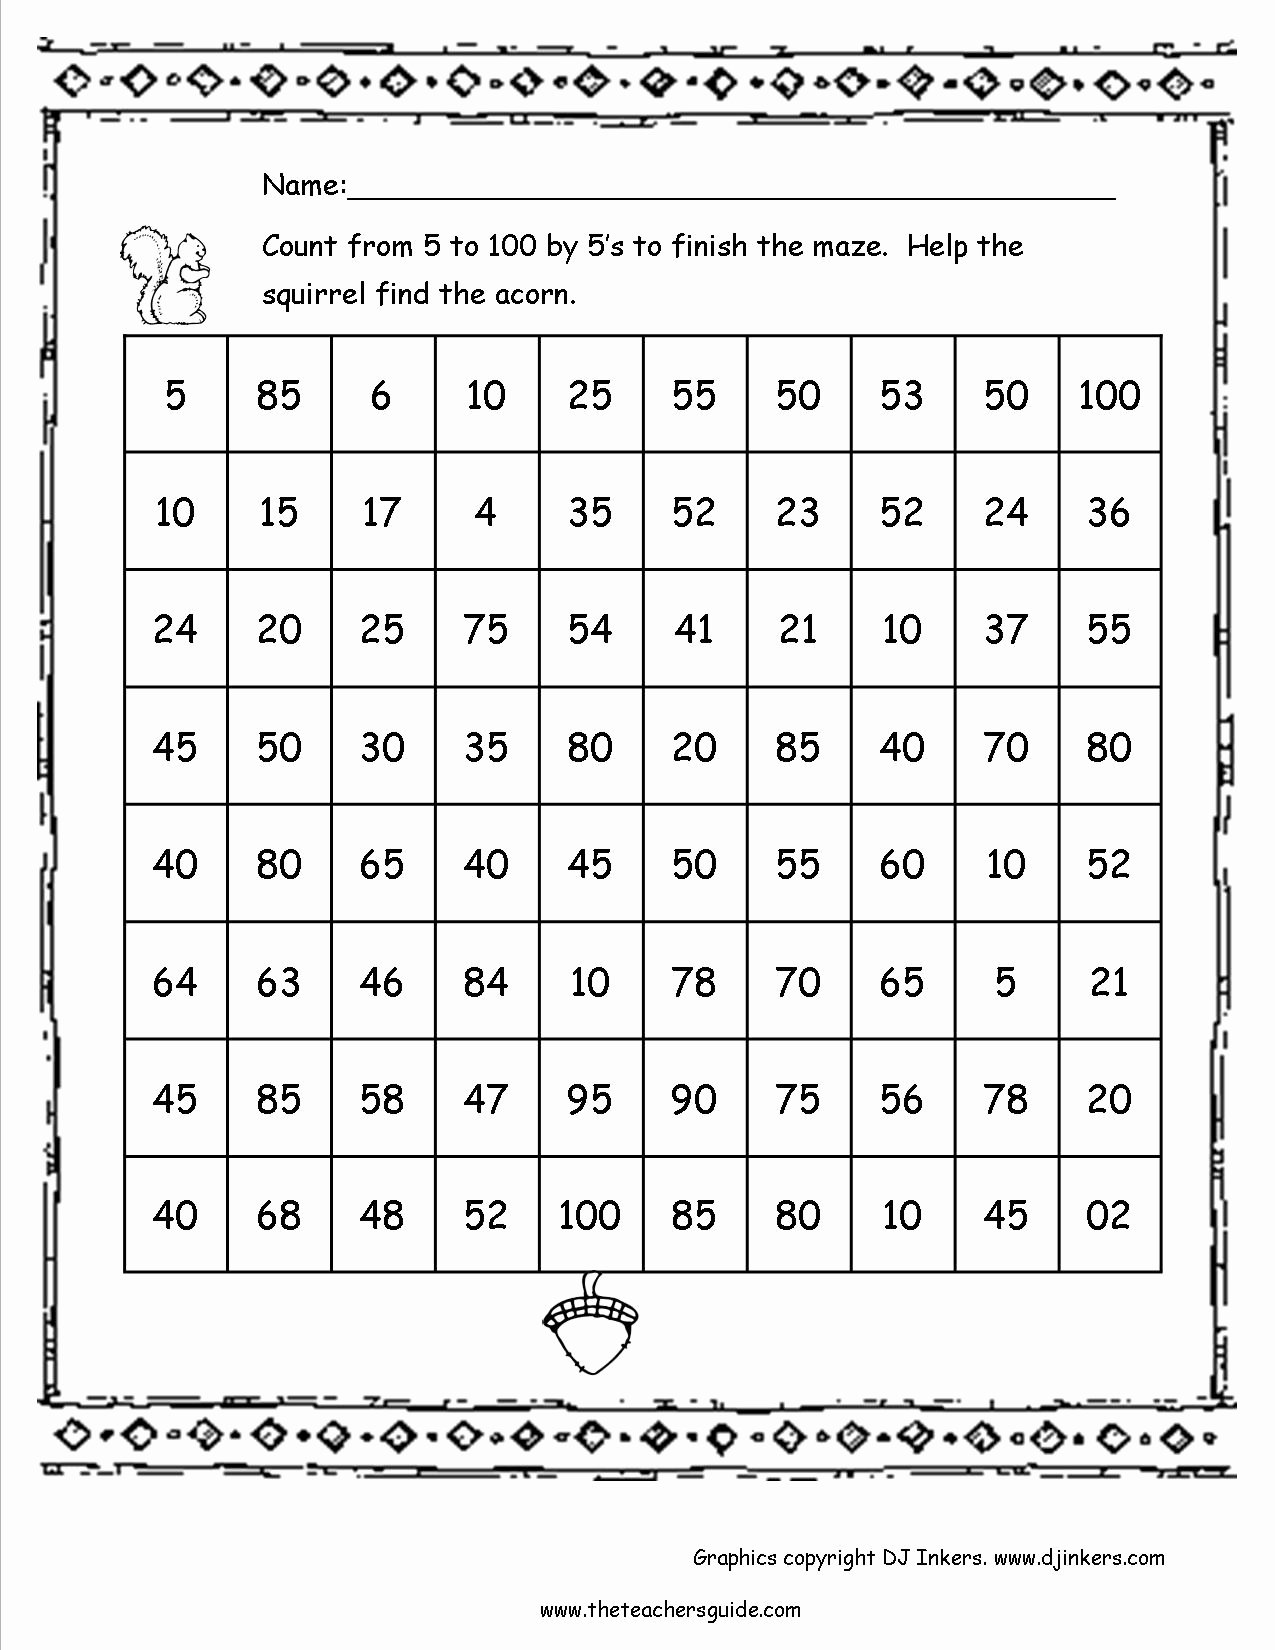 Last Days Of School Worksheets Inspirational Day Worksheets Kids Activities Printable Coloring the